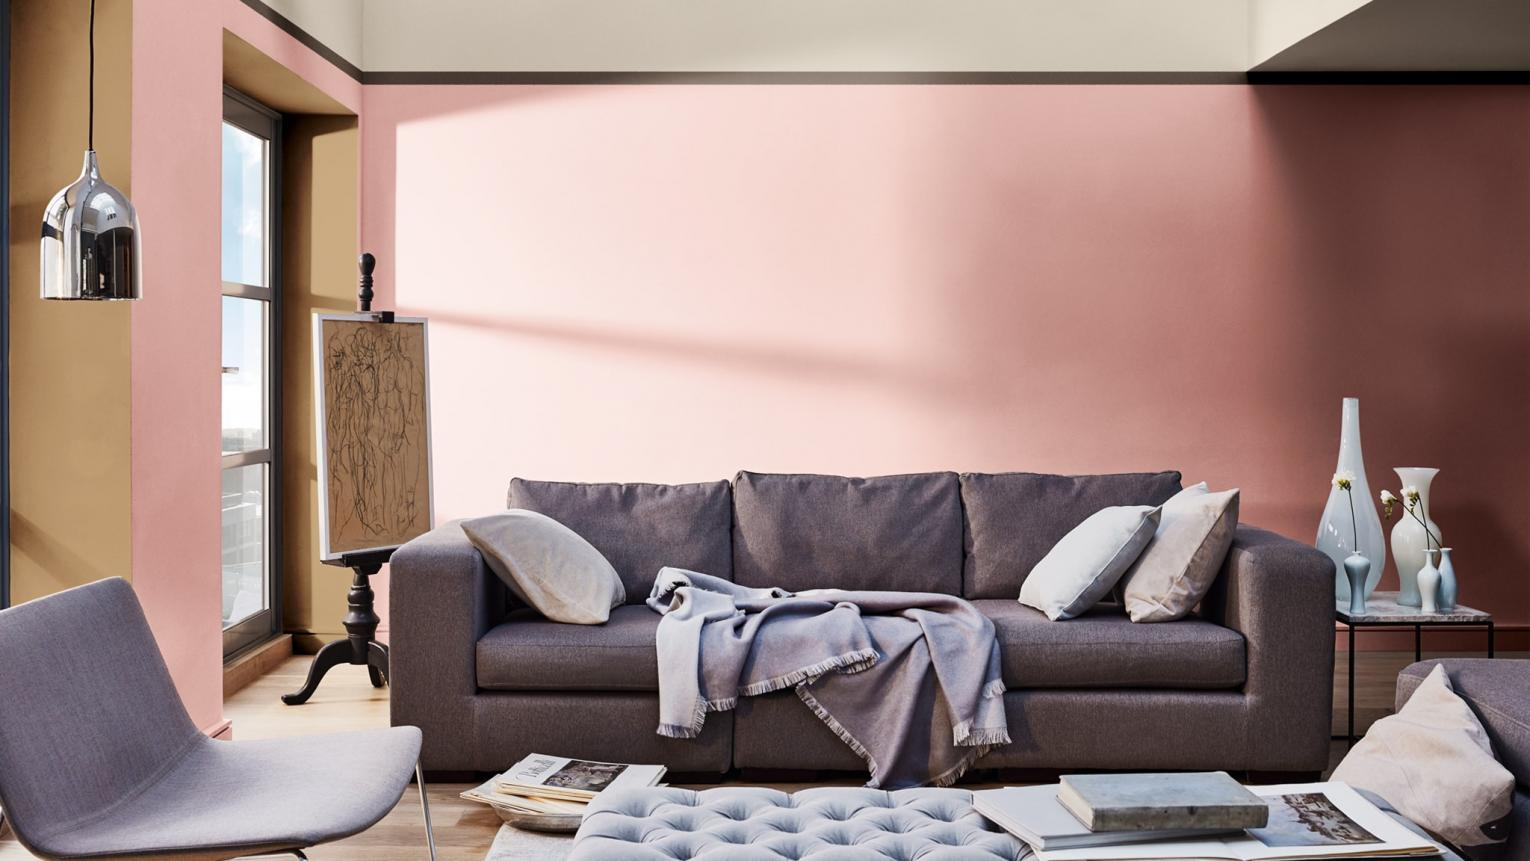 Deco-Paints-Colour-Futures-Colour-of-the-Year-2019-A-place-to-dream-Livingroom-Inspiration-02